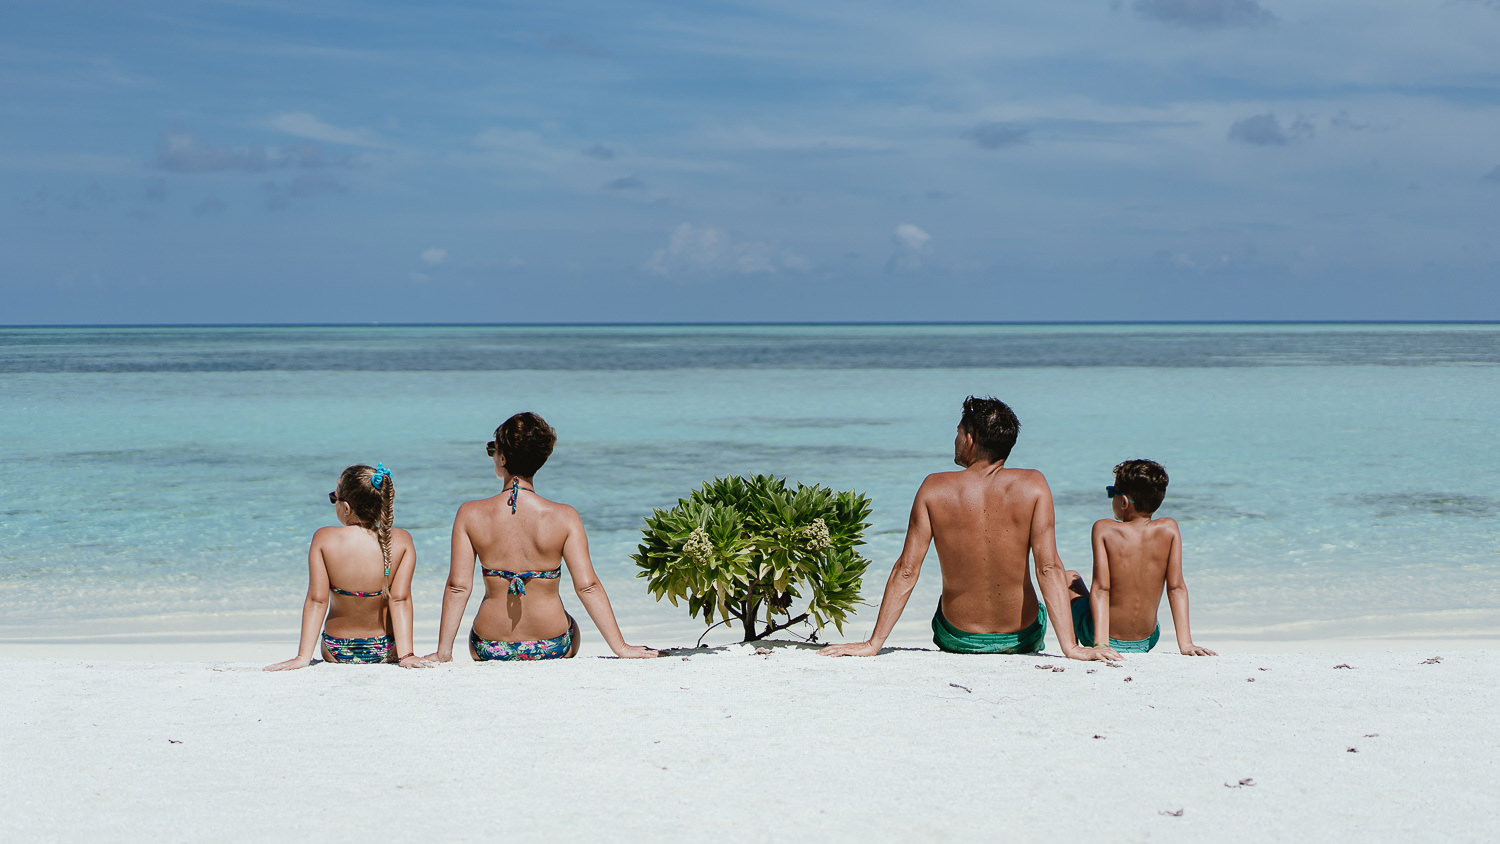 wedding photographer in maldives anniversary trip excursion relax chill out cocoon beach family